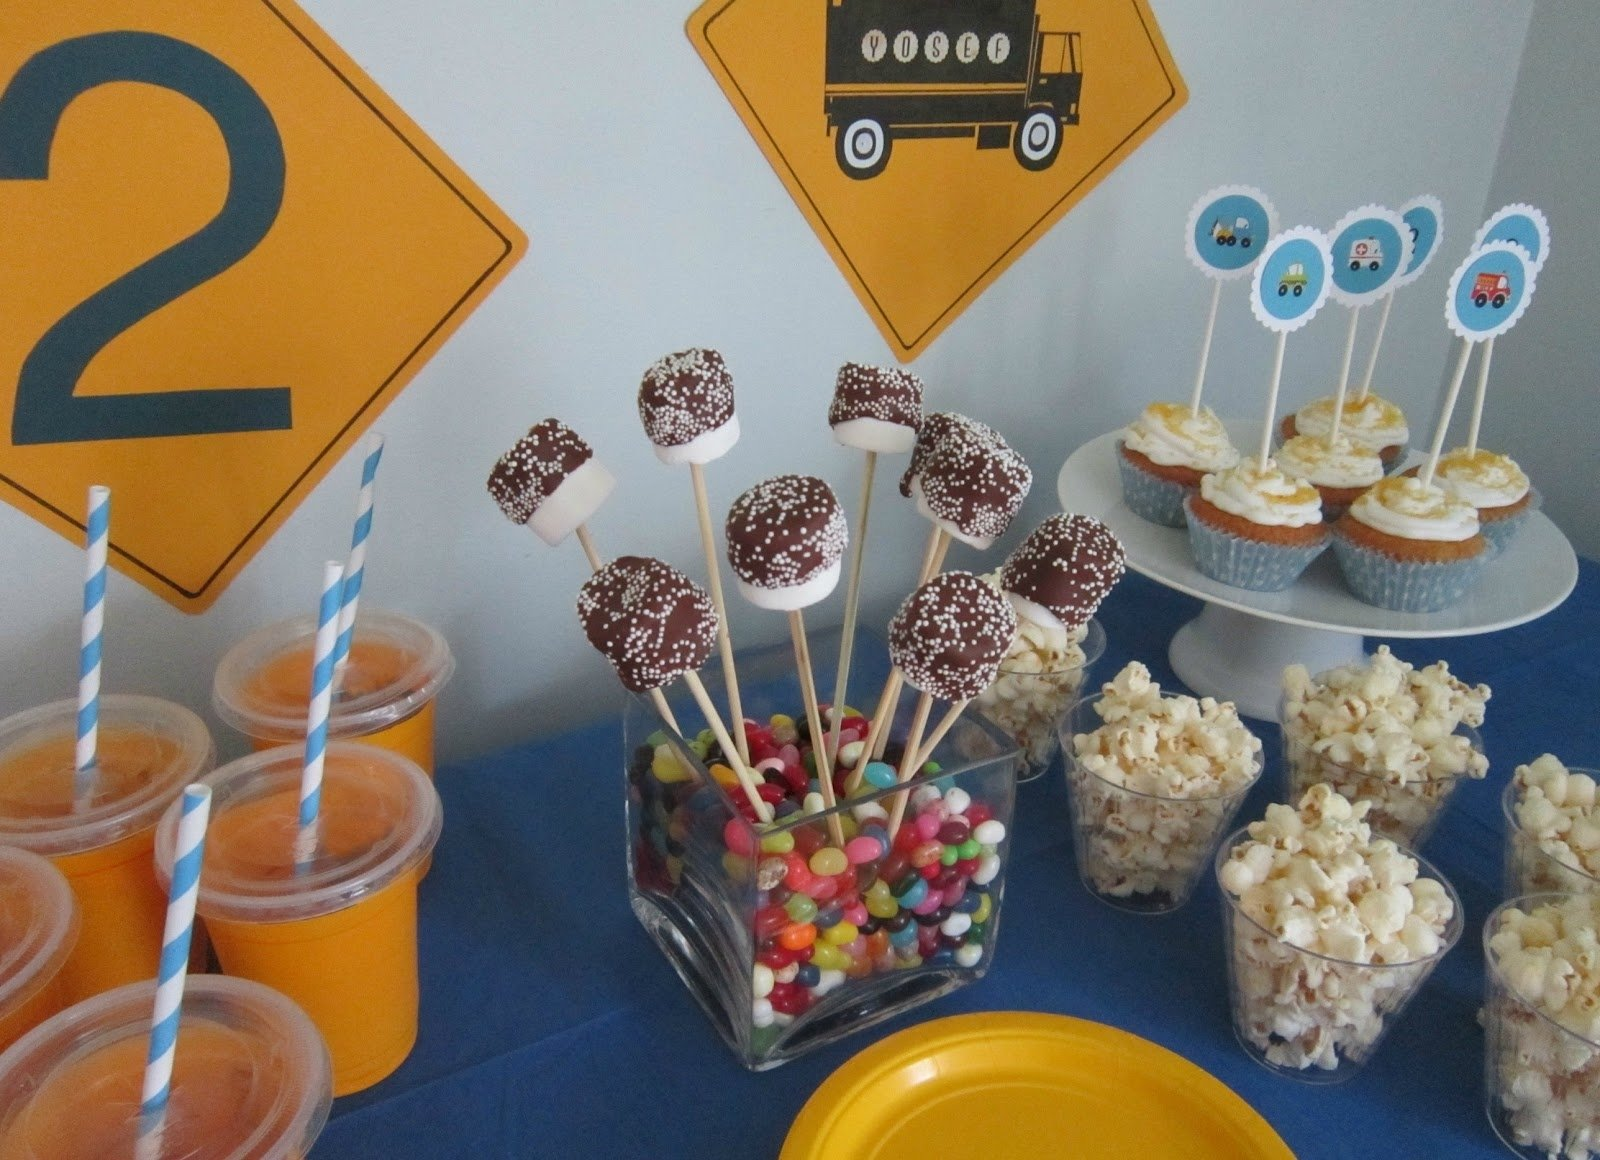 10 Nice 12 Year Old Birthday Party Ideas For Boys Themes Game A